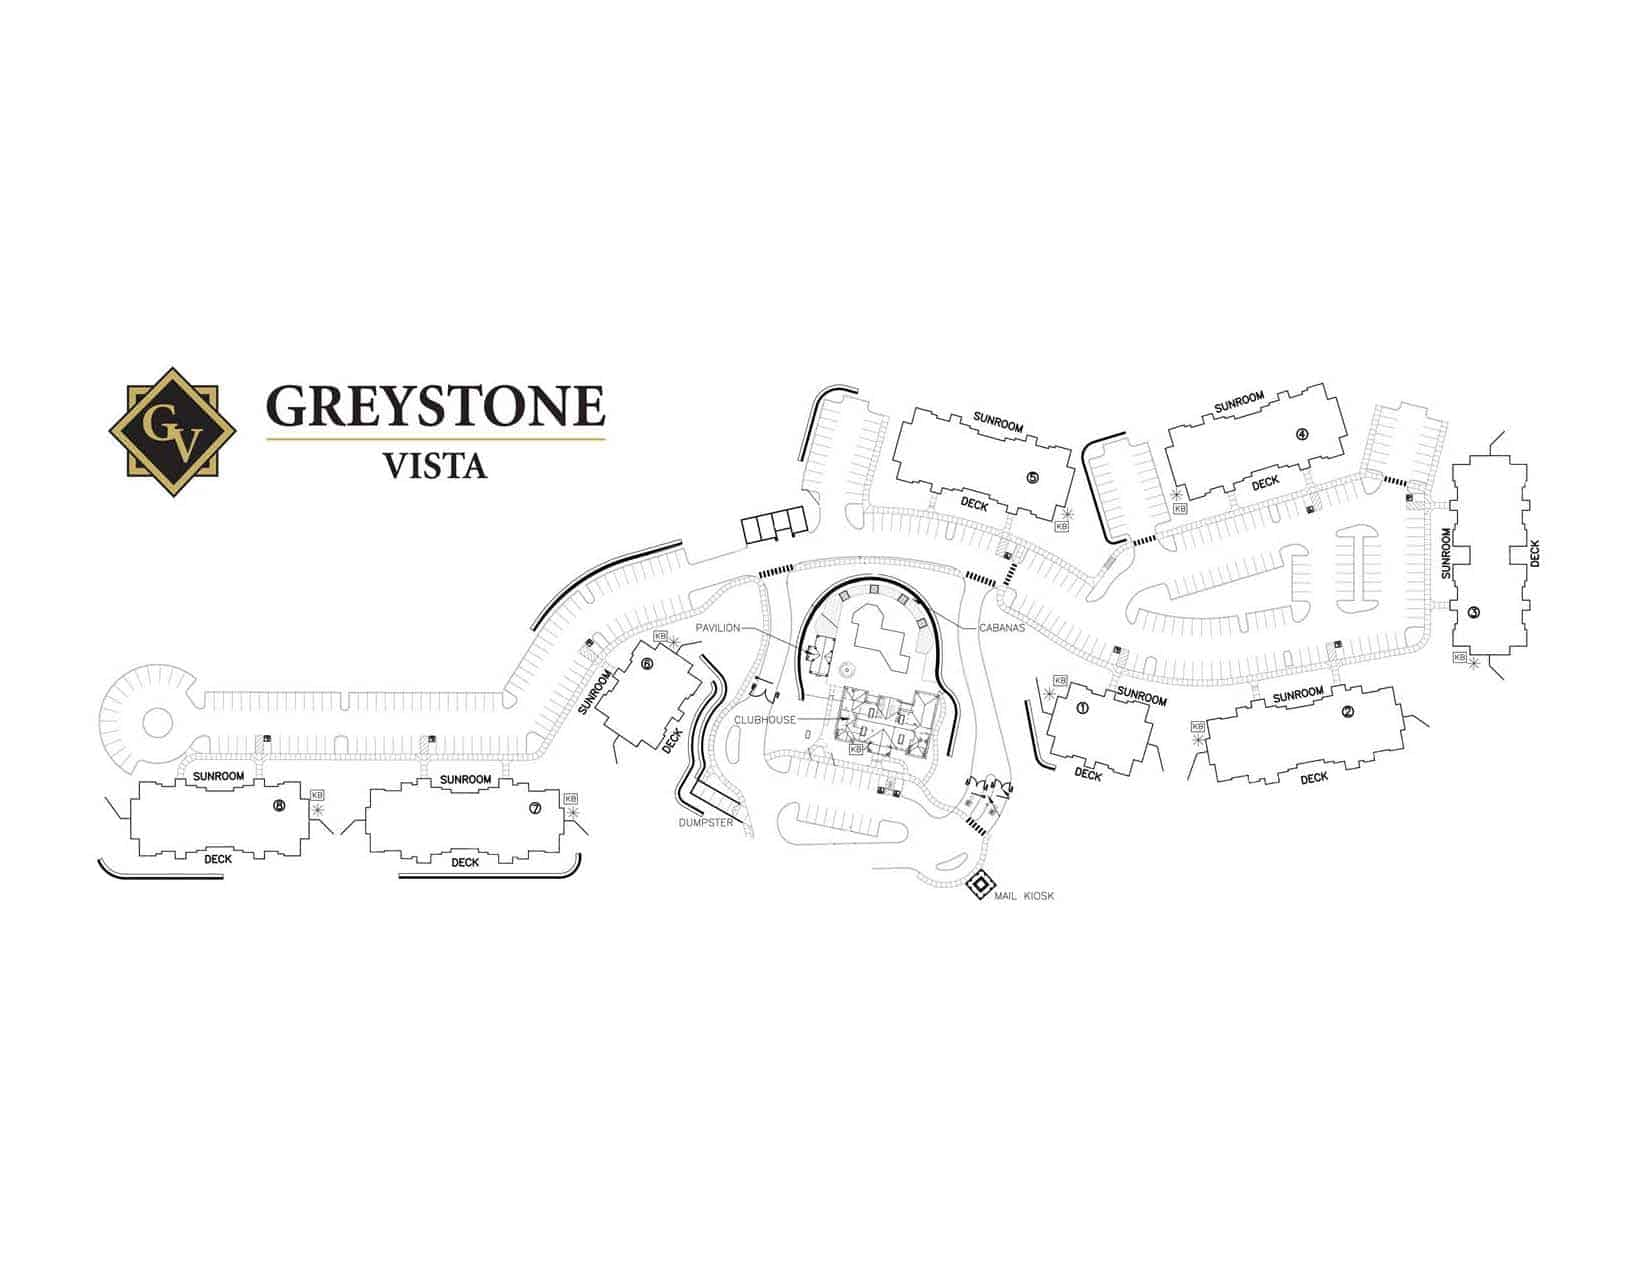 Greystone Vista Knoxville Site Plan